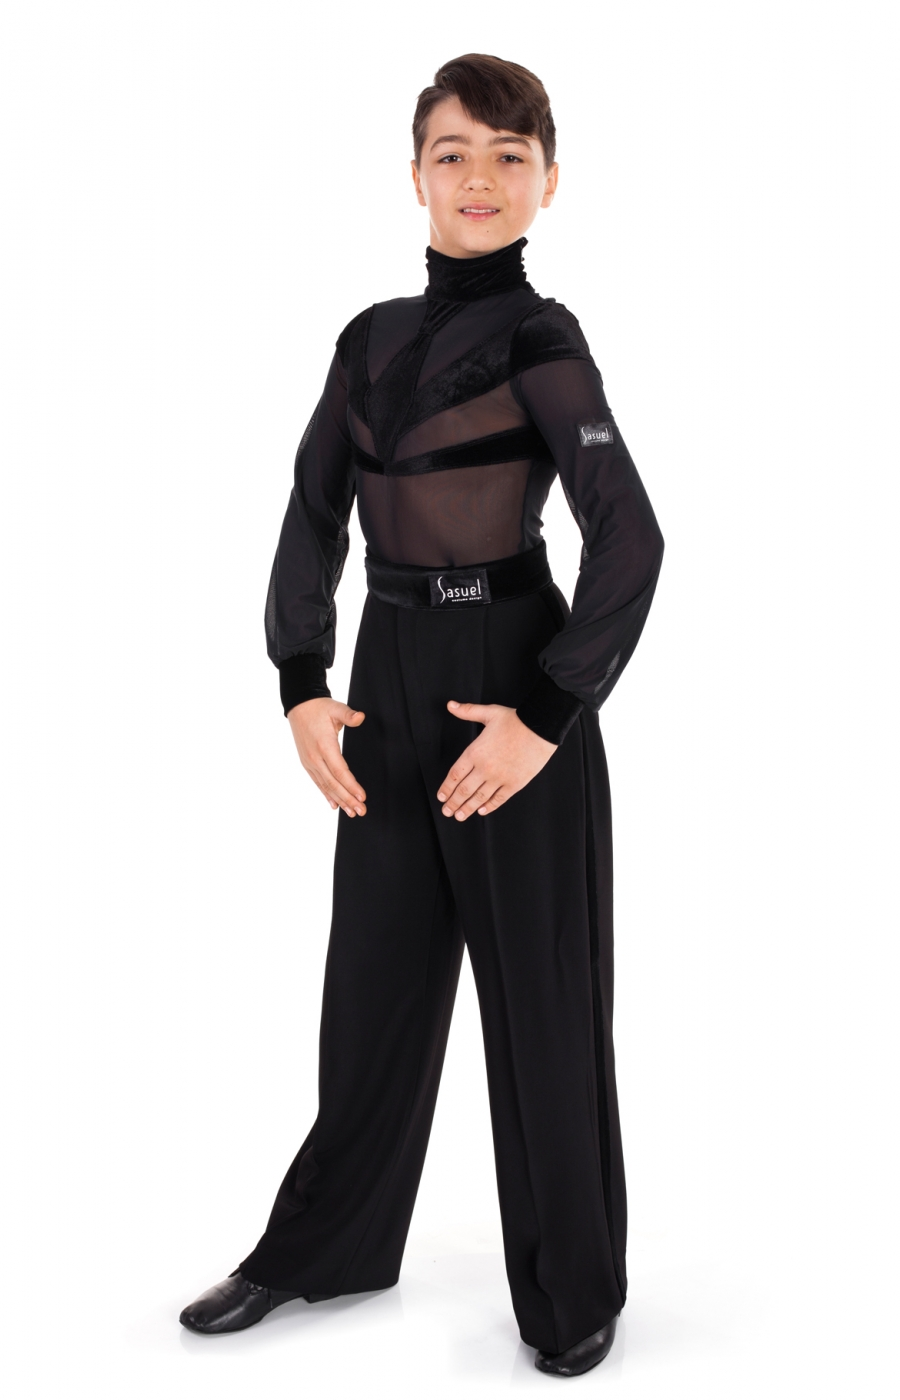 Latin Transparent Black Body Shirt Boys